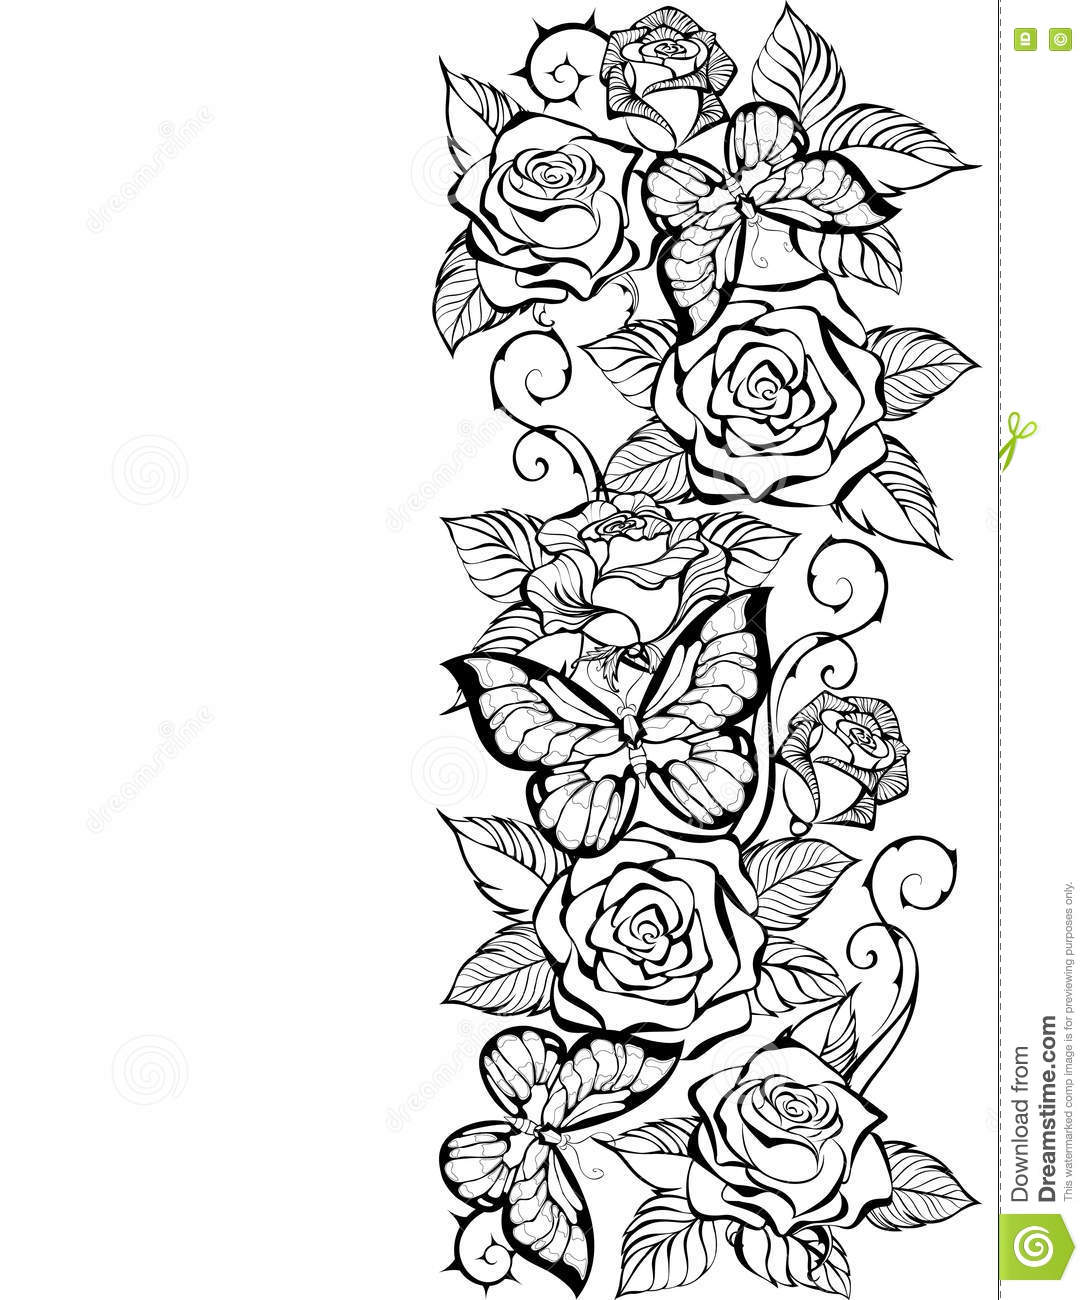 Rose coloring pages border